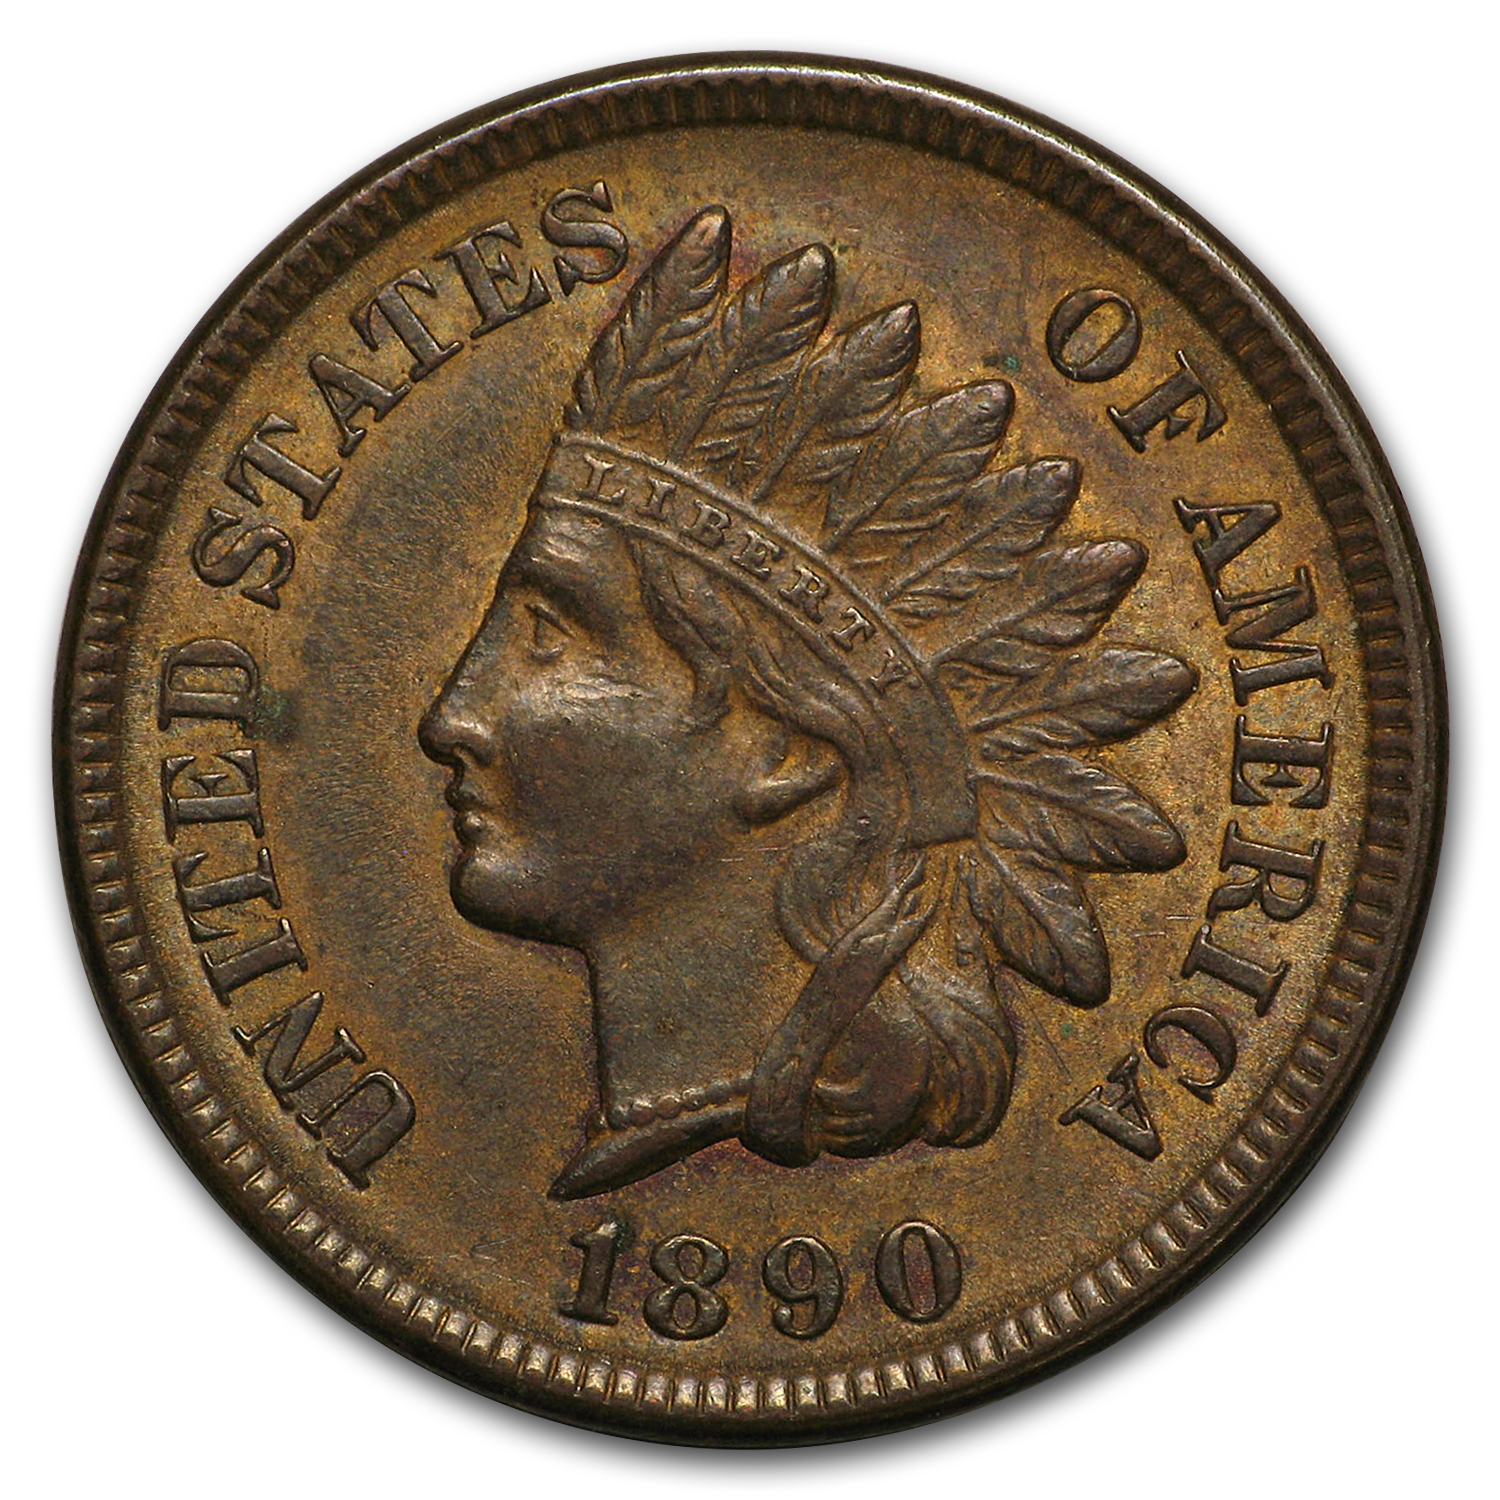 1890 Indian Head Cent AU